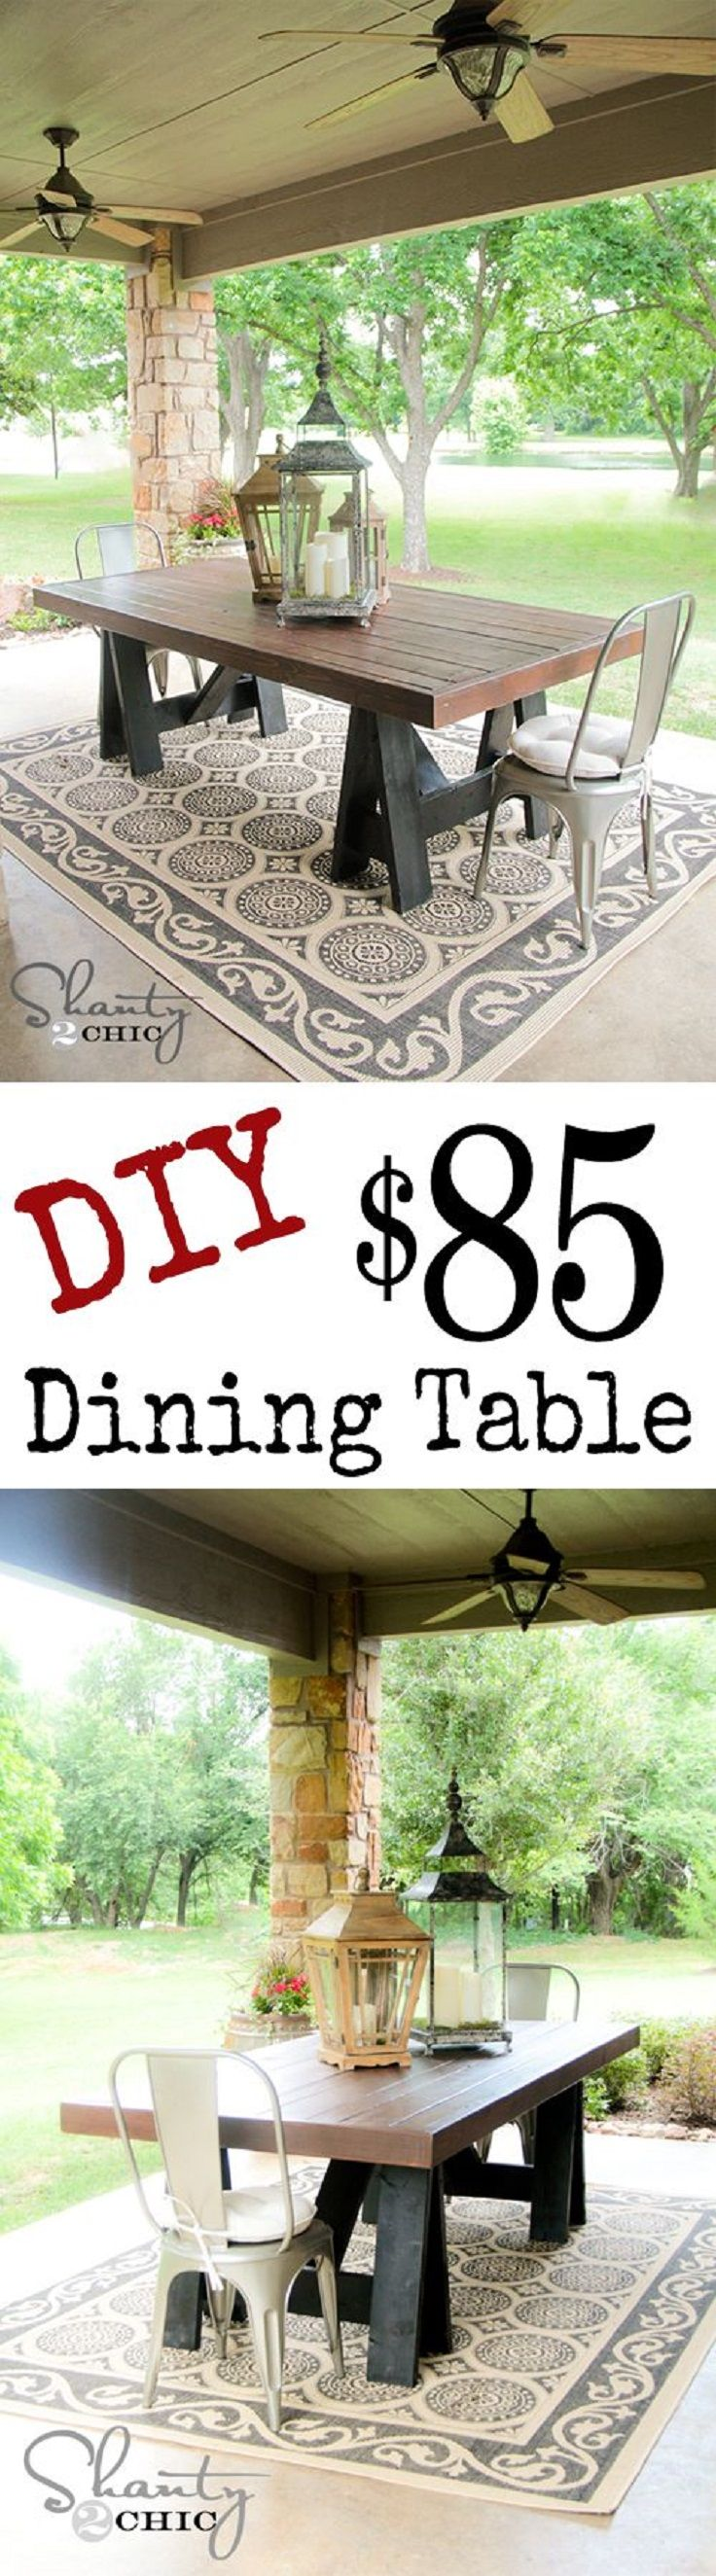 DIY Pottery Barn Dining Table for Your Outdoor - 15 Timeless DIY Outdoor Table Plans and Tutorials